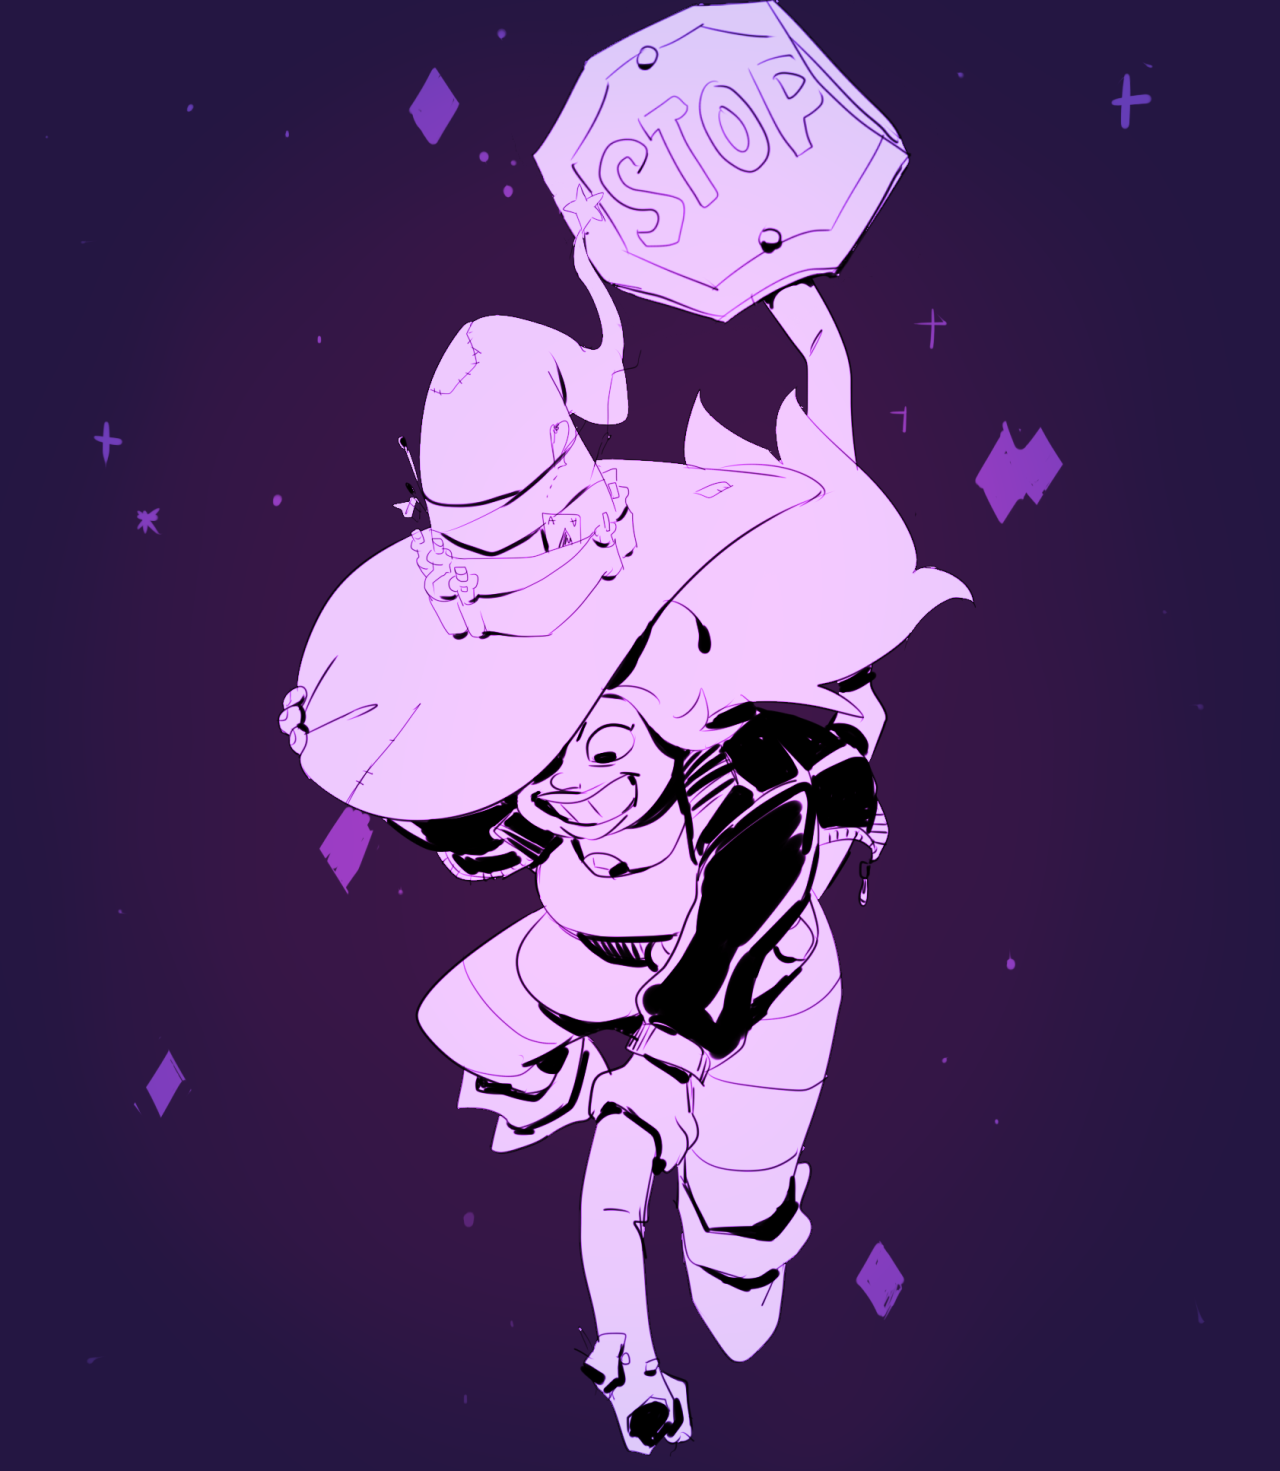 """""""Inktober #25 - Steven Universe #2 halloween edition """" i just wanted to redraw my scrappy amethyst witch from last year"""